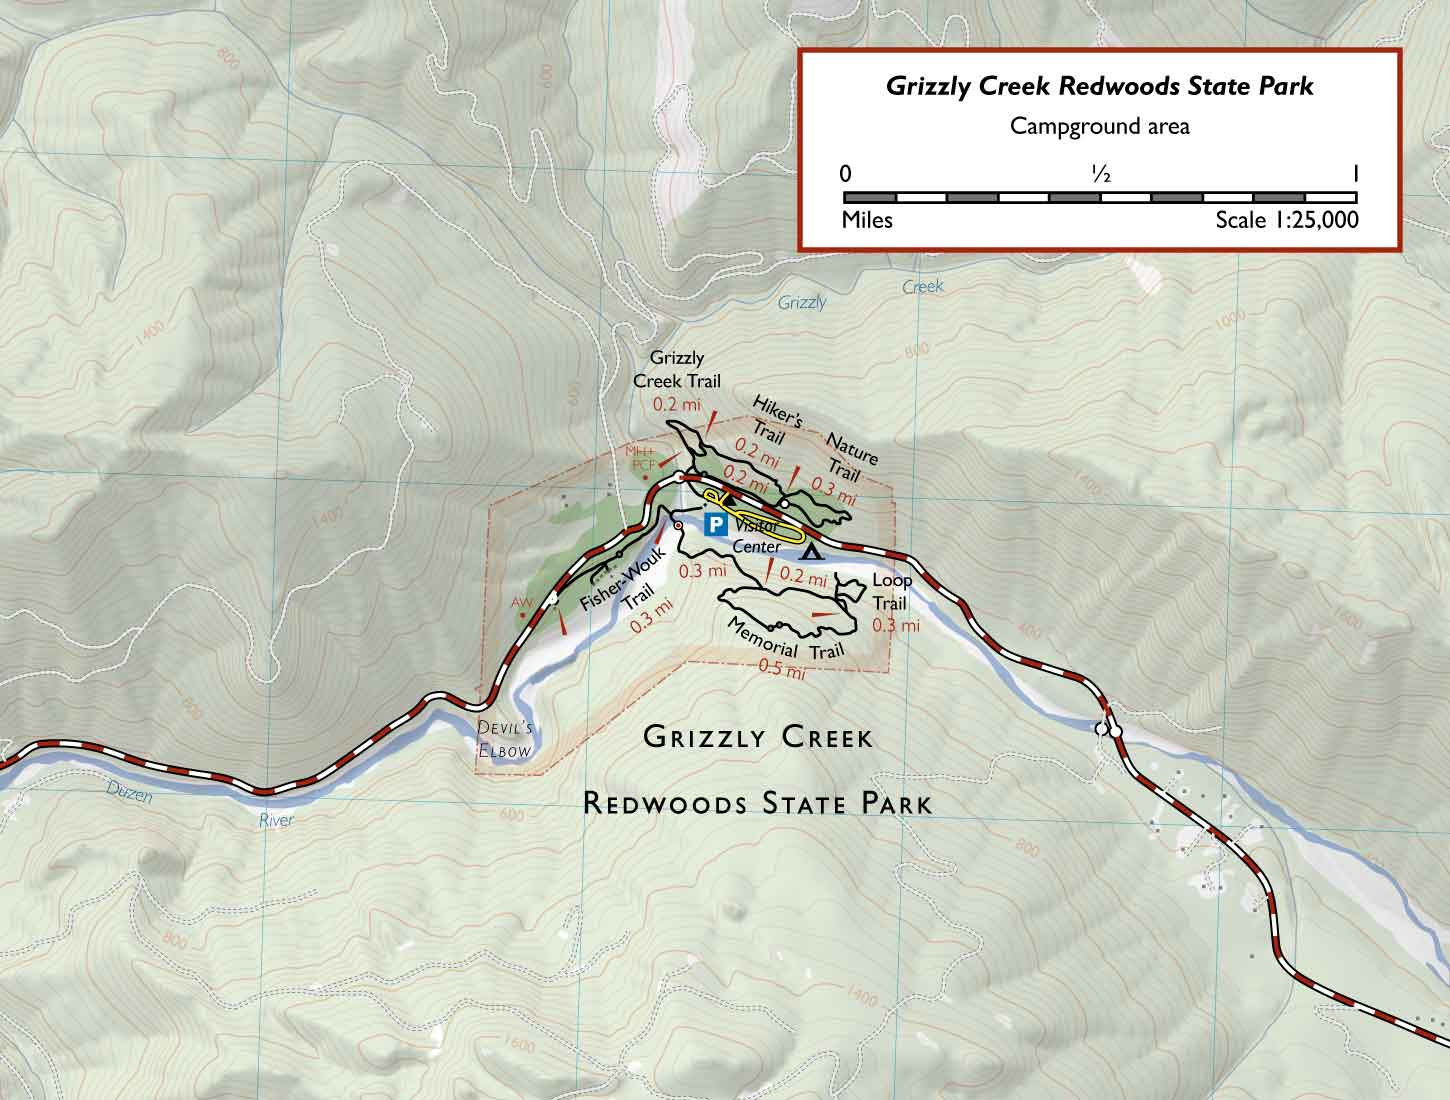 Grizzly Creek Redwoods State Park And Van Duzen County Park